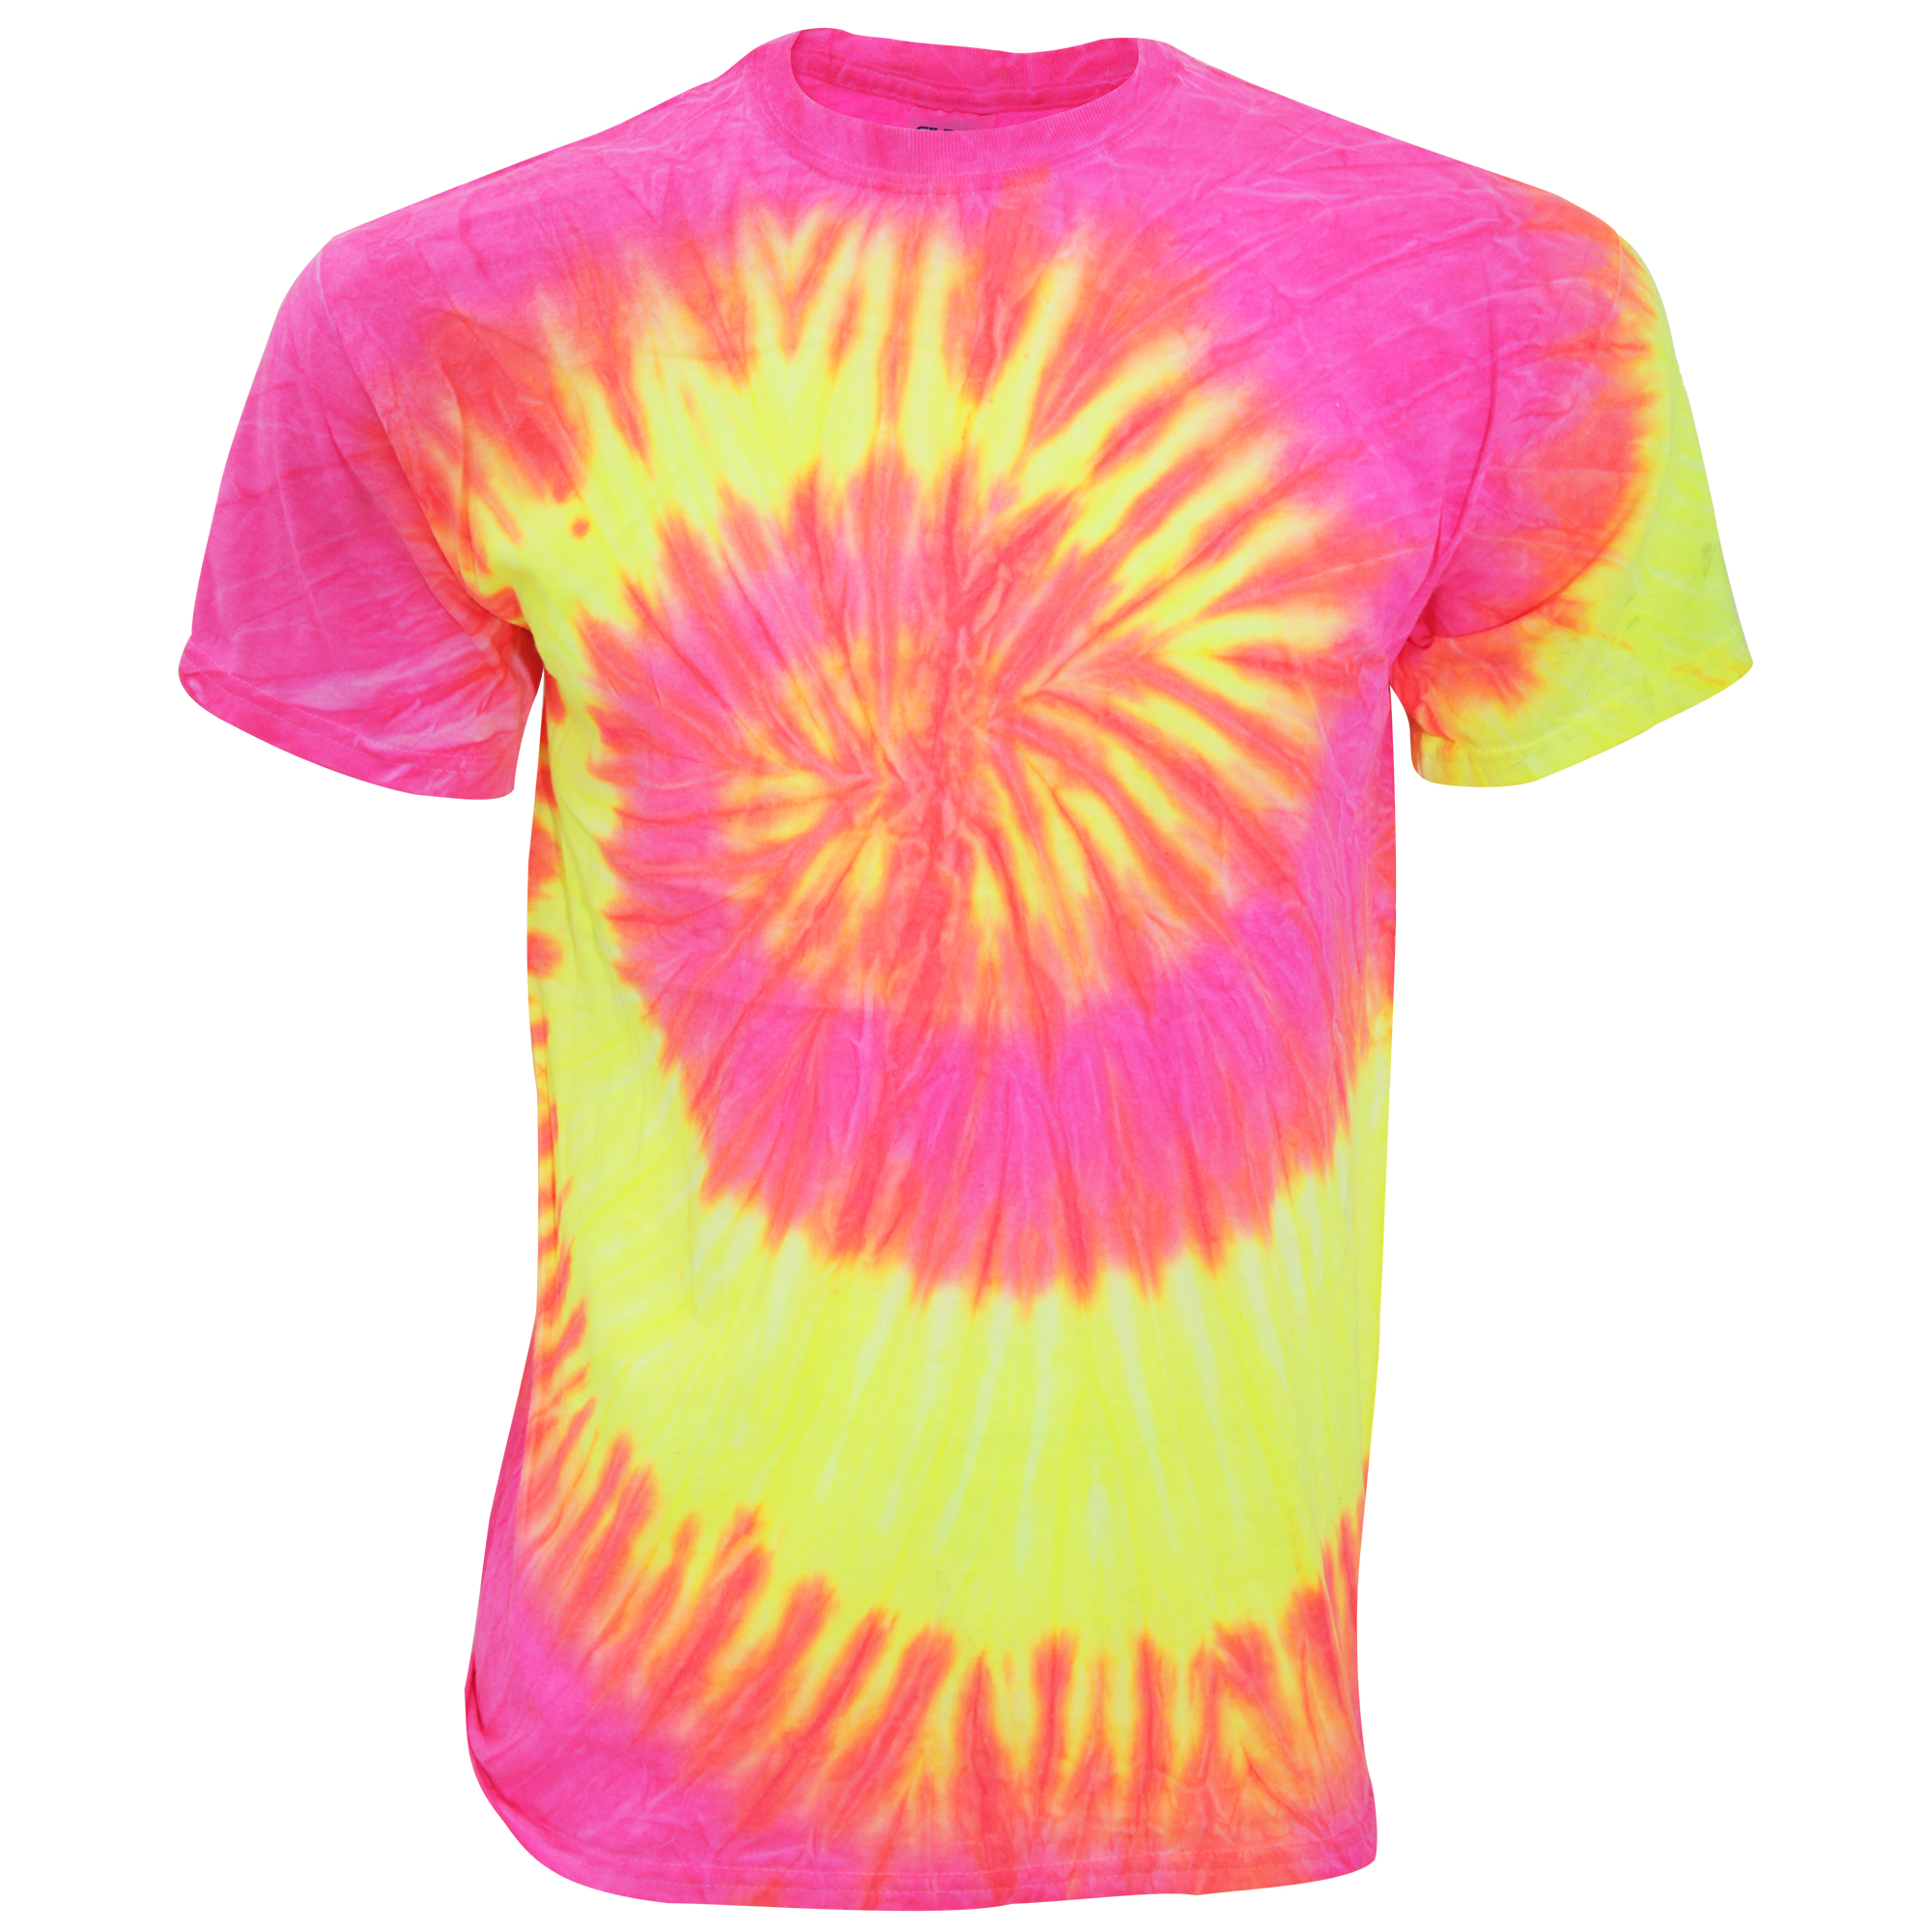 Tduk mens short sleeve rainbow tie dye t shirt for Nike tie dye shirt and shorts